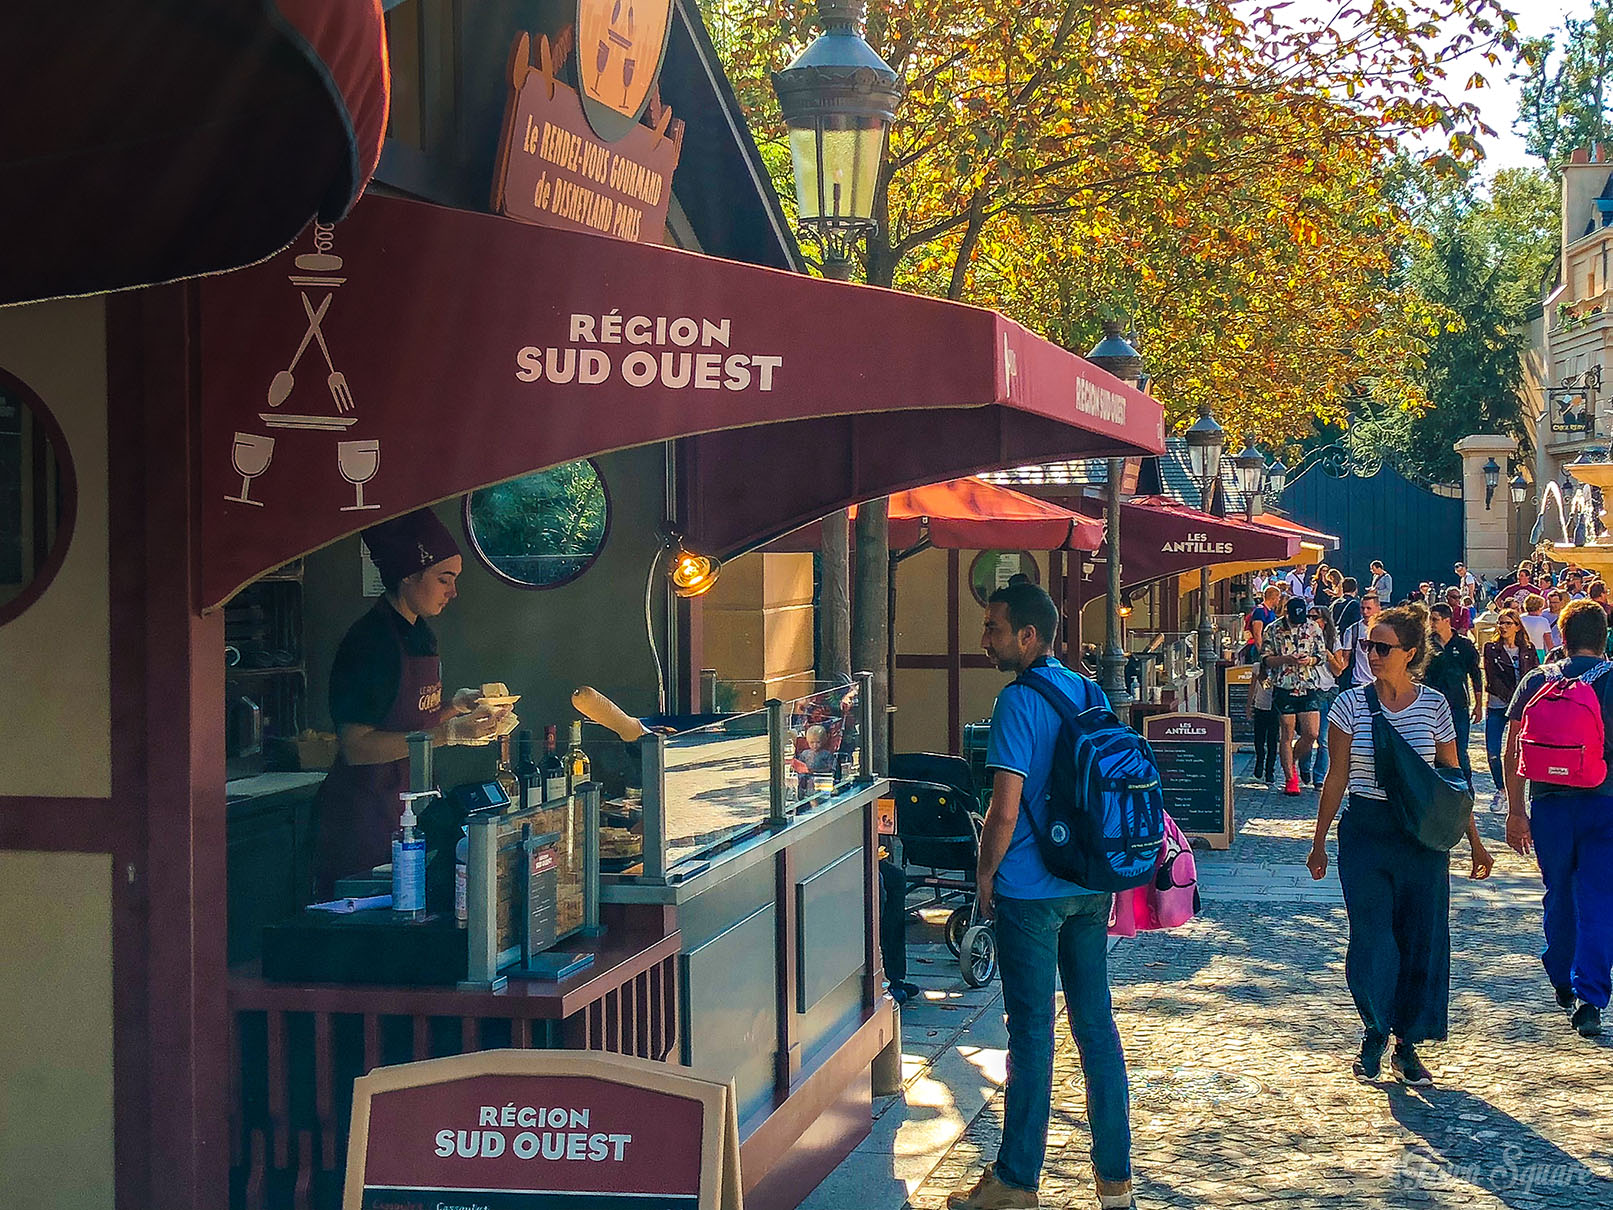 The Rendez-Vous Gourmand 2018 at Disneyland Paris